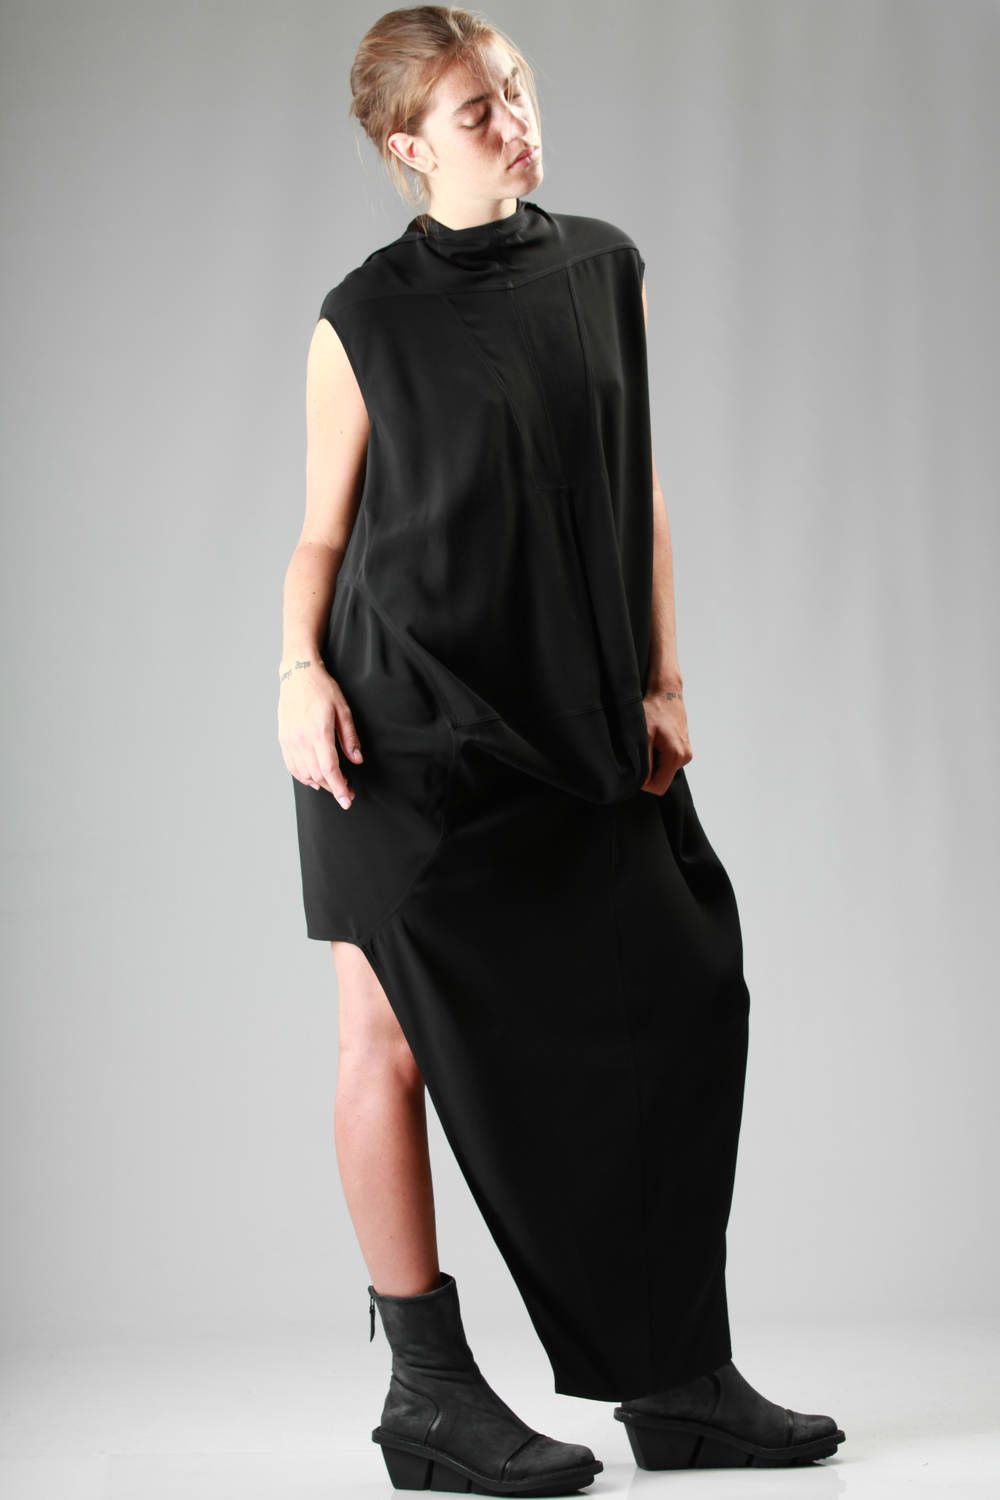 Rick Owens | 'runway' dress longer on the front and shorter on the back in viscose and acetate crêpe | 'runway' dress longer on the front and shorter on the back in viscose and acetate crêpe, flared sleeve, cowl neck, wide central front draping, geometrical stitching on the front, back closure with press buttons and wide lapels | article code: 24270 | season: Autumn/Winter | composition: 50% acetate - 50% viscose